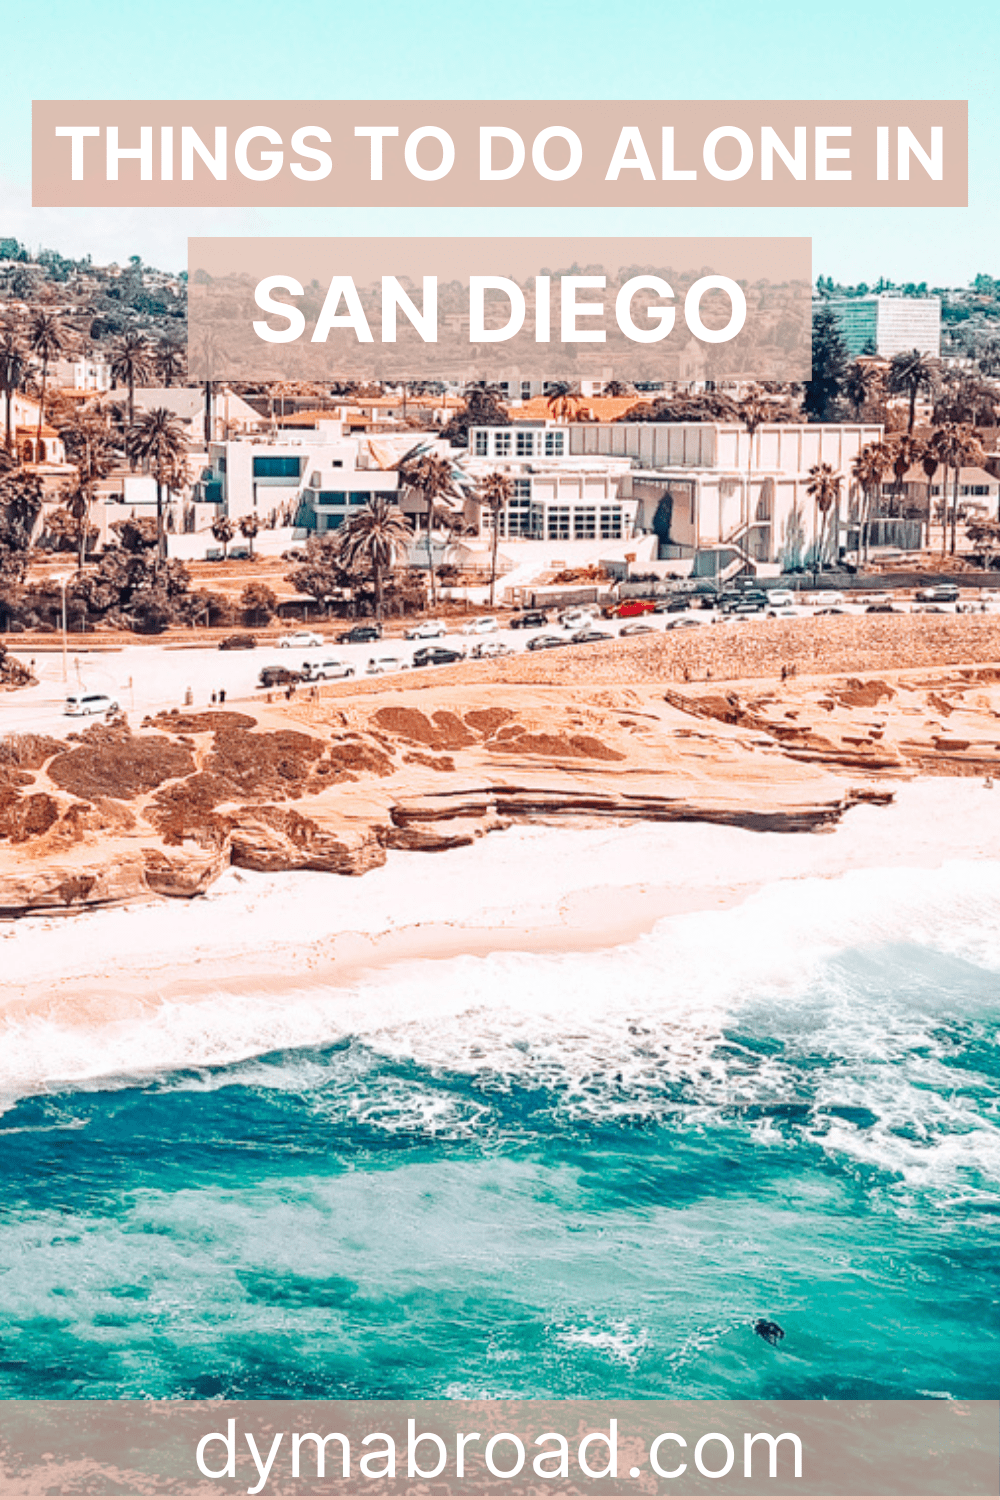 Things to do alone in San Diego Pinterest image